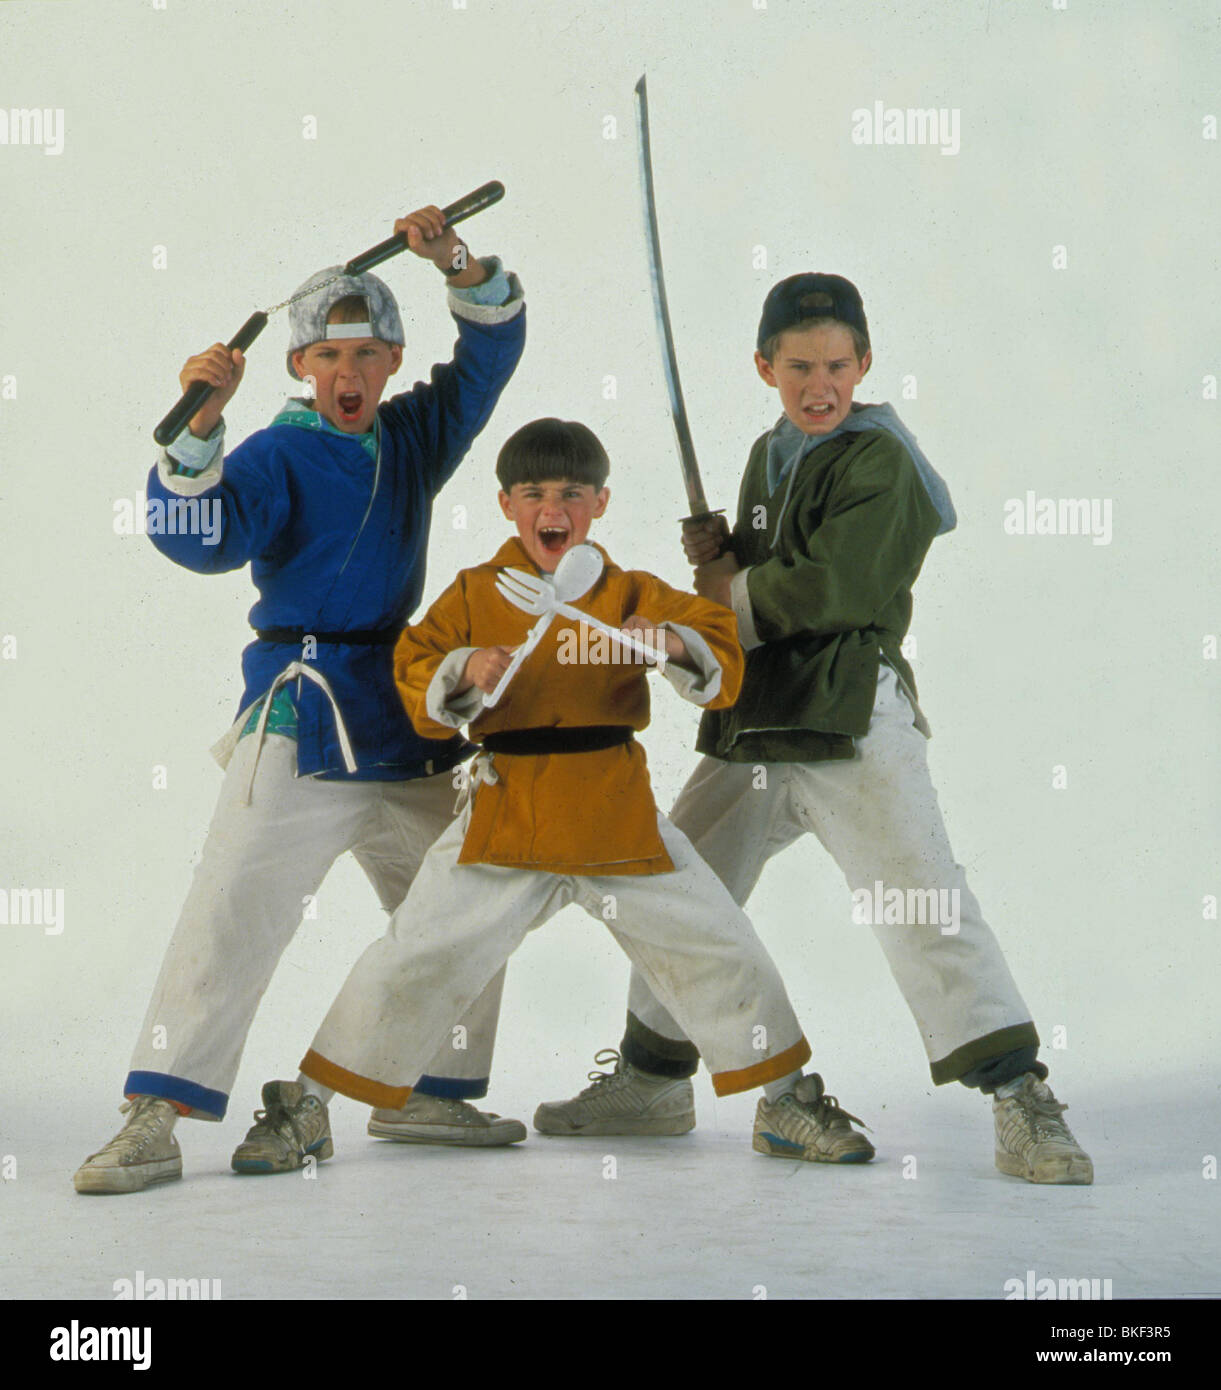 THREE NINJAS (1993) MICHAEL TREANOR, CHAD POWER, MAX ELLIOTT SLADE TNJA 001 - Stock Image